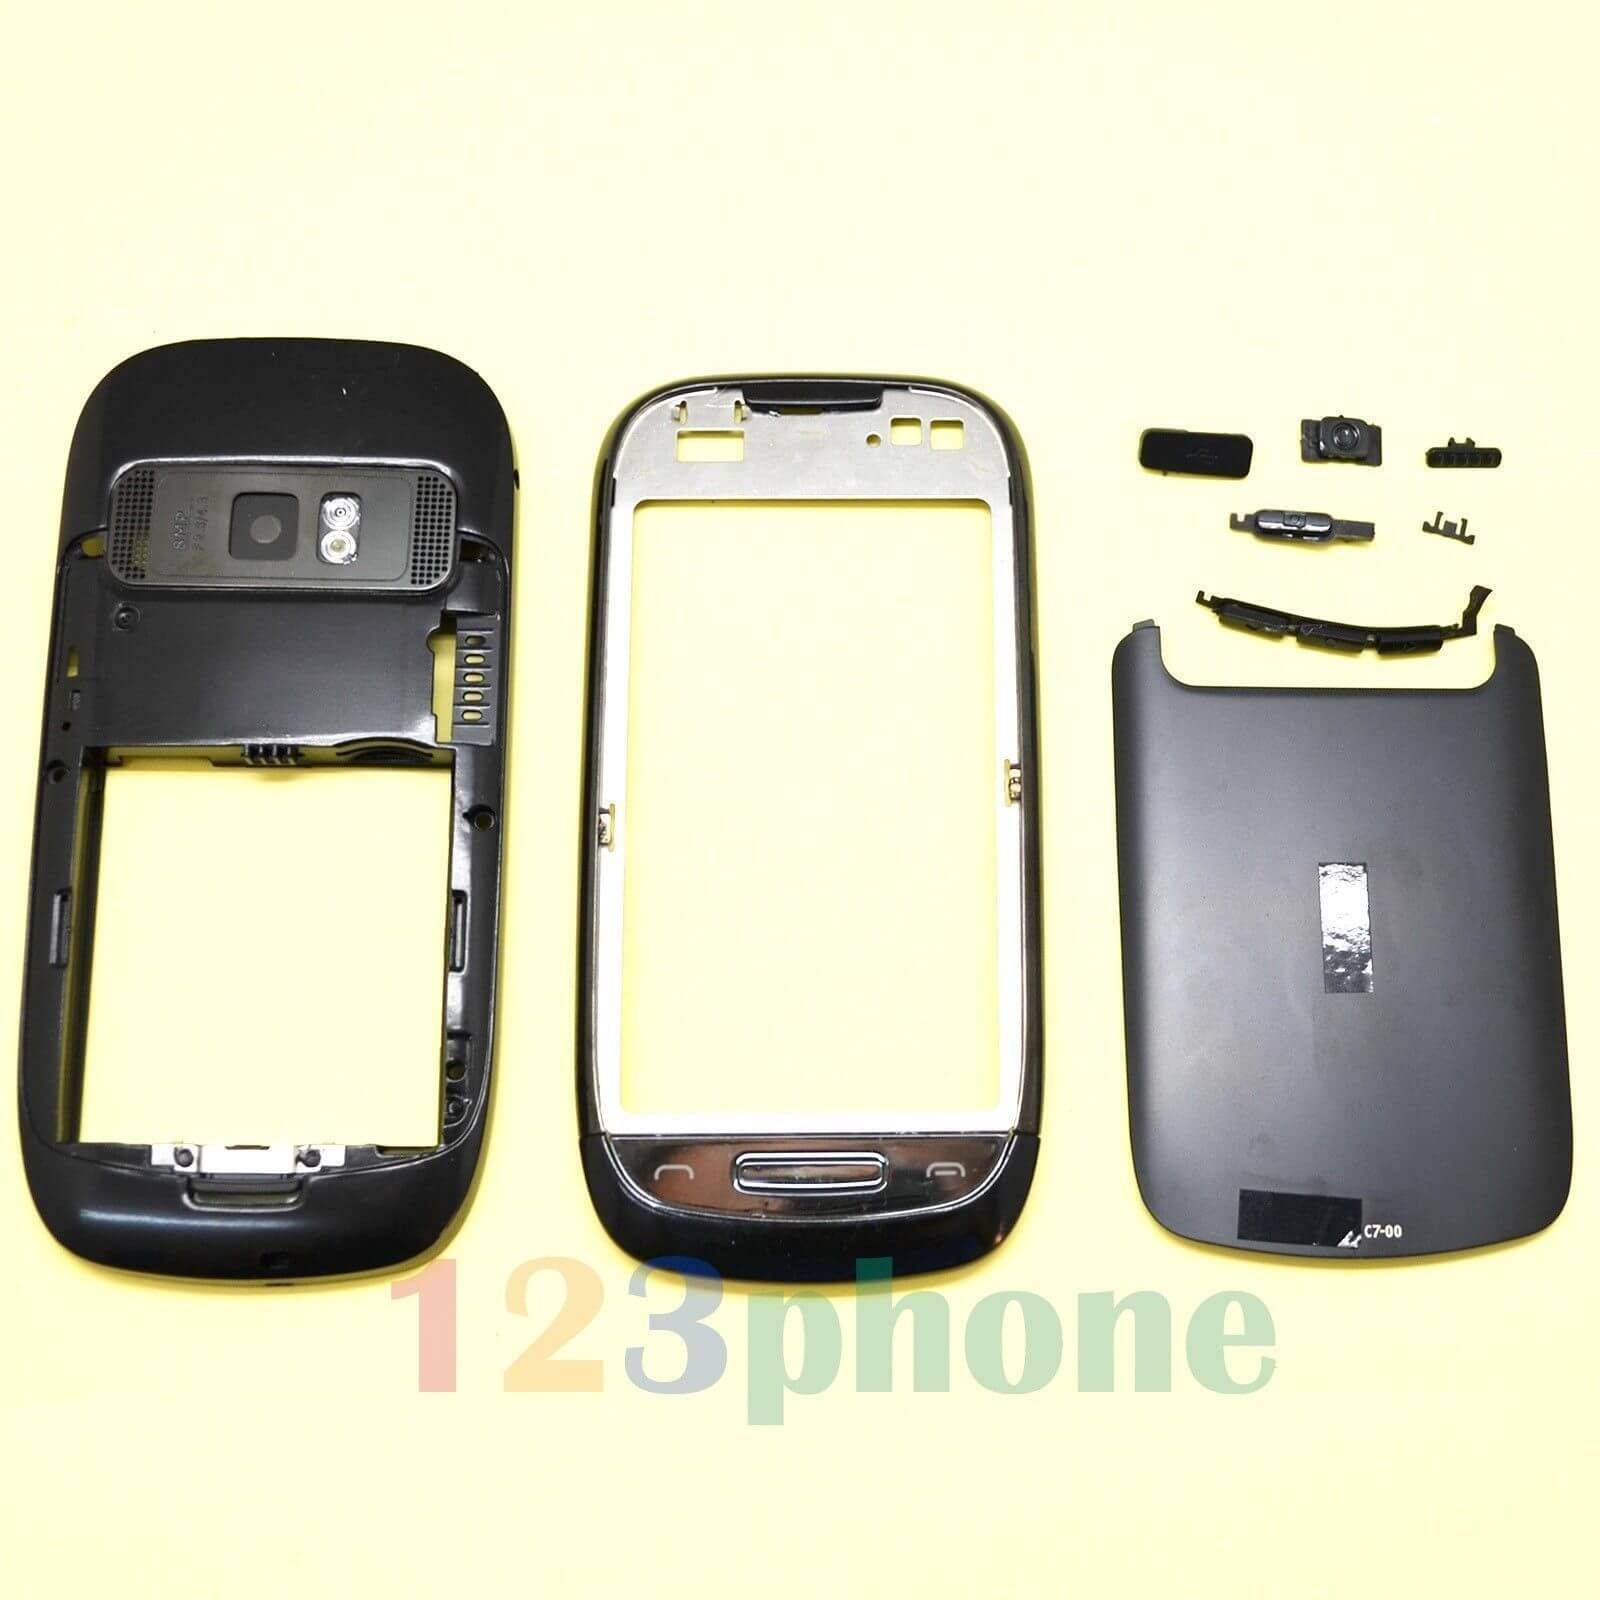 Nokia C7 Astound / RM-675 / RM-691 Full Original Cover Housing Faceplate Body Panel Complete Parts